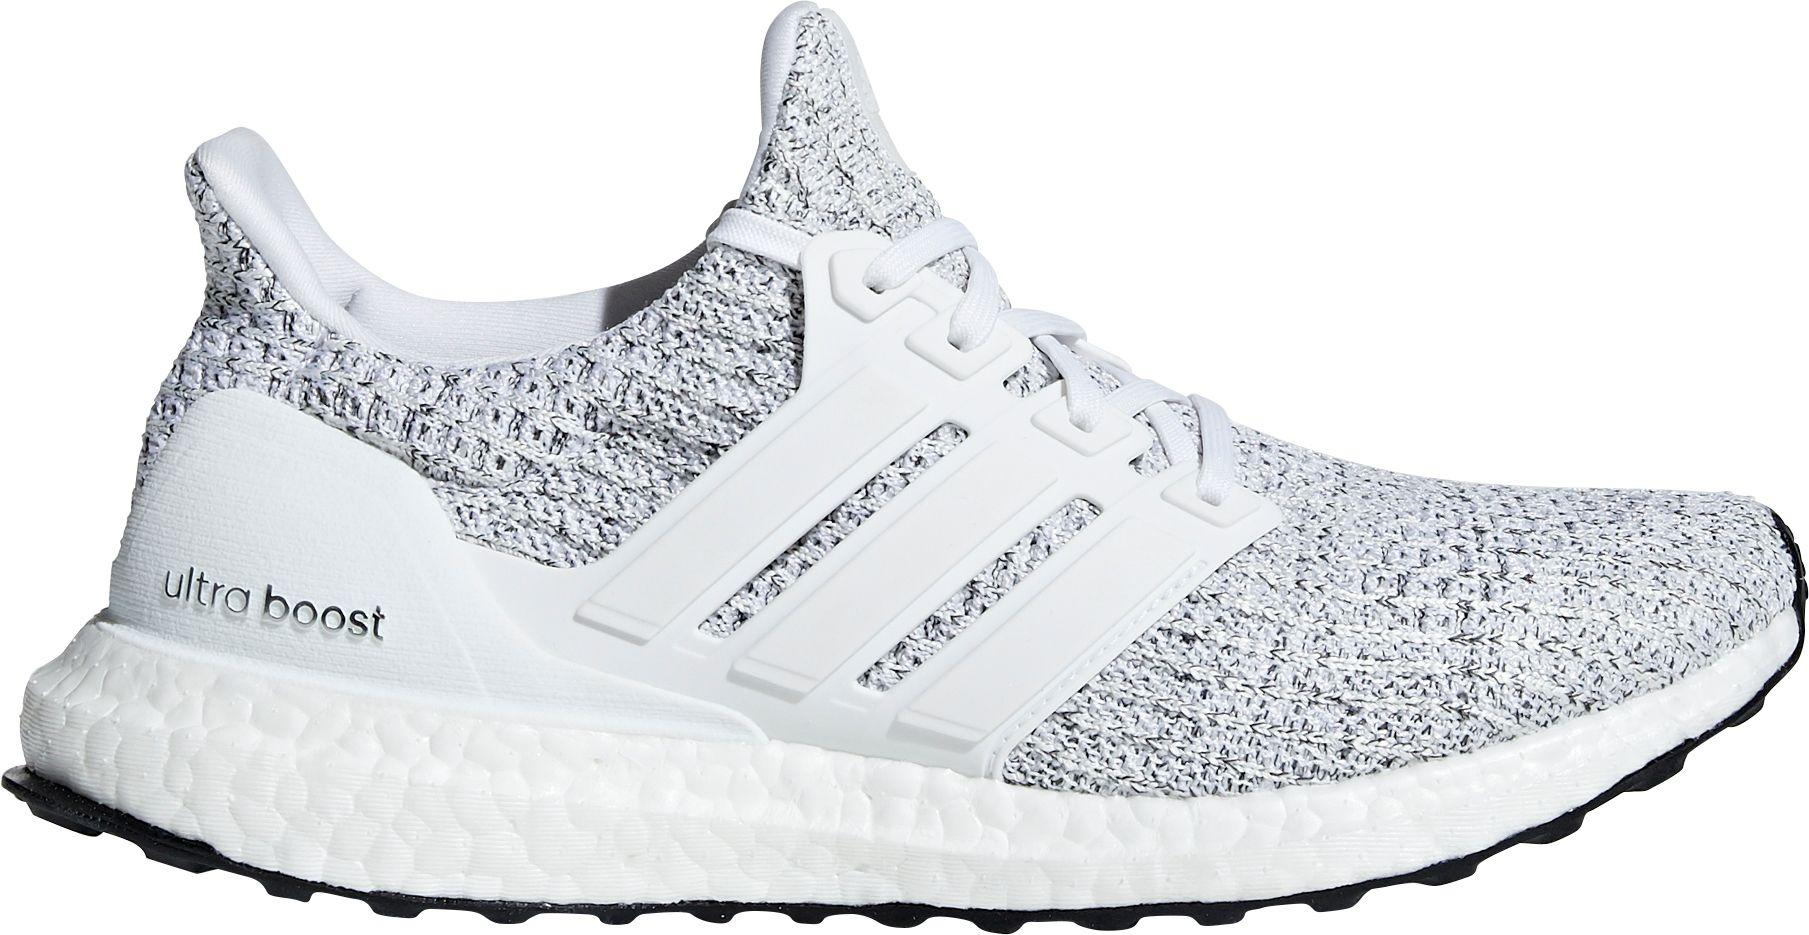 5792151c55ff3 Lyst - adidas Ultraboost Running Shoes in White